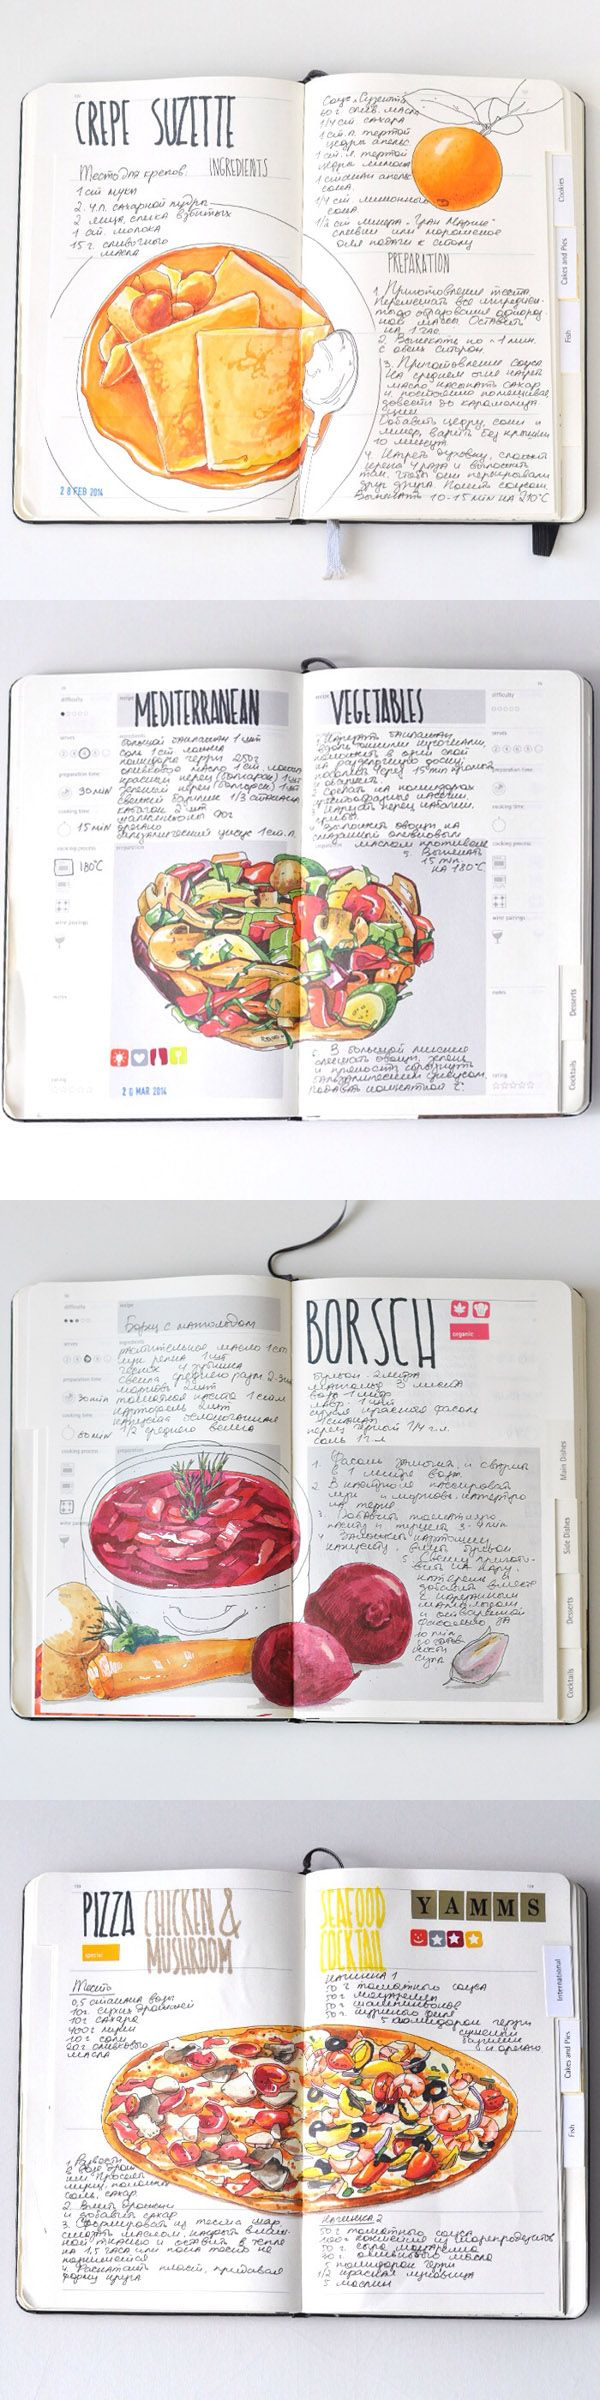 Recipe journal 2014 by sally mao products recipes pinterest recipe journal 2014 by sally mao forumfinder Gallery